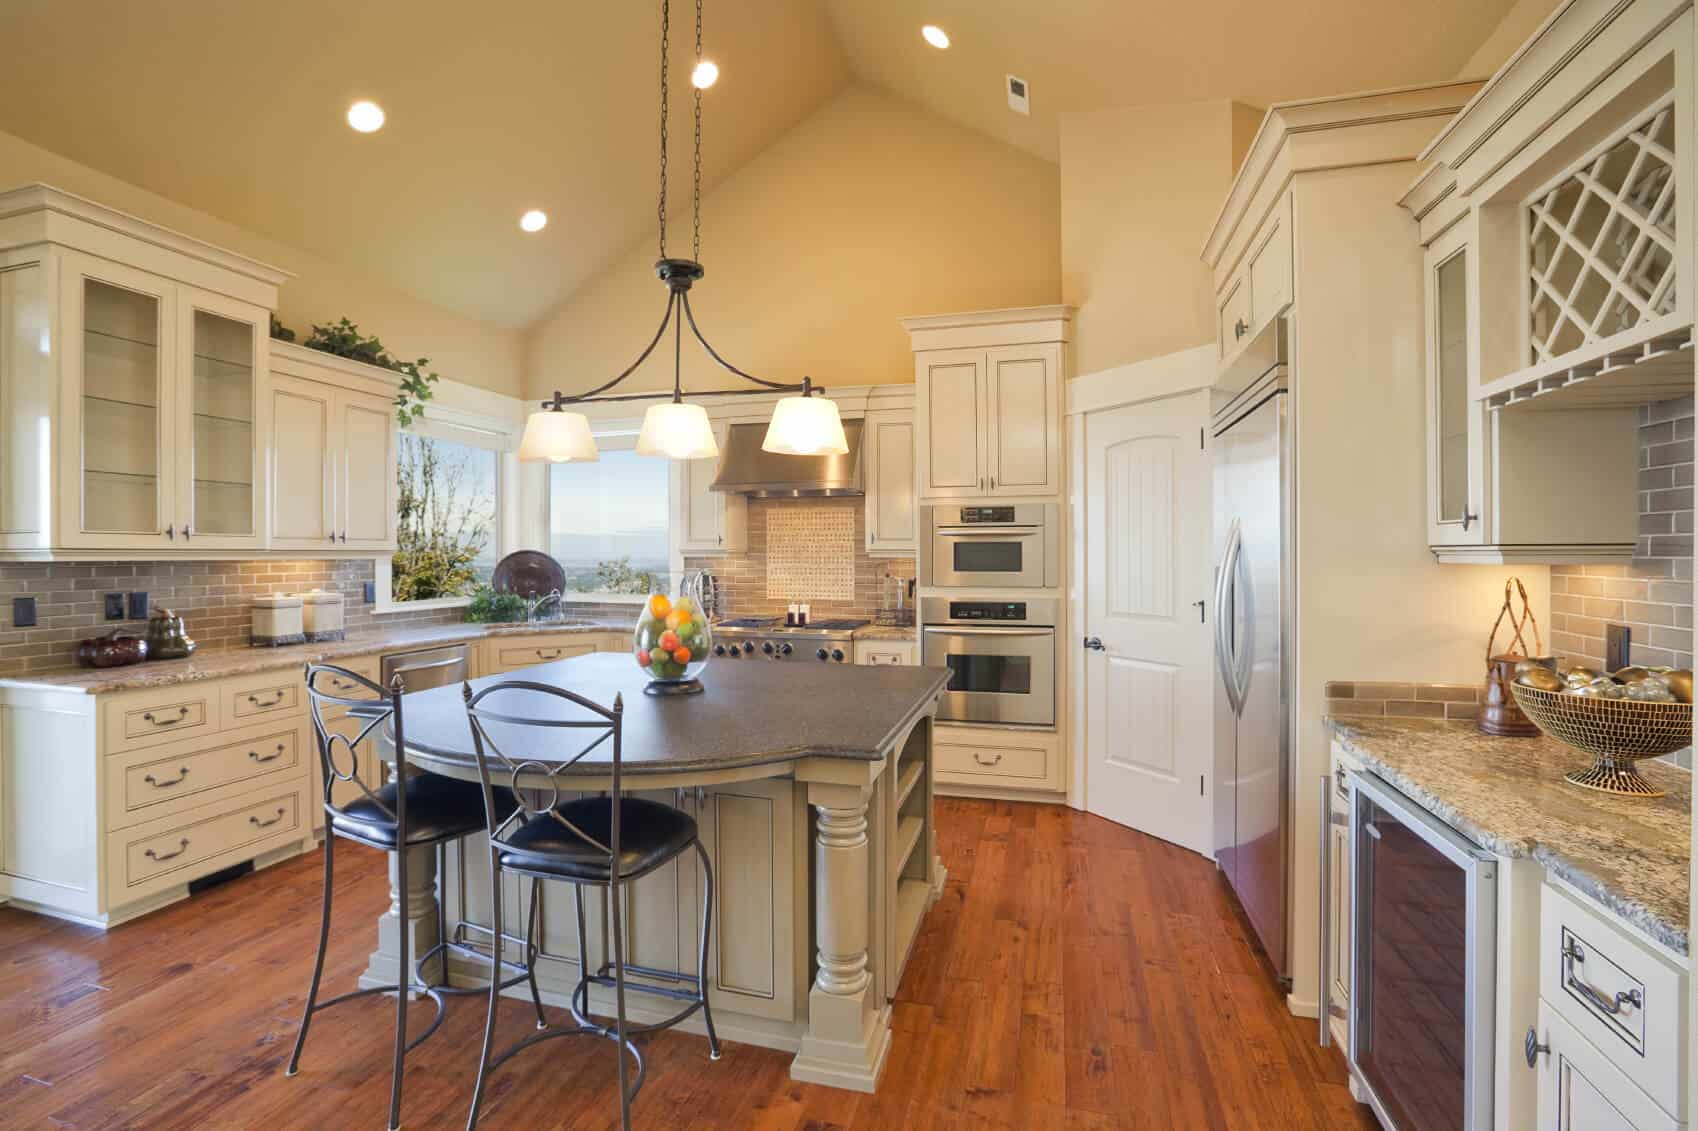 This kitchen features a large U-shaped kitchen with a tall ceiling, chandelier, picture windows, and hardwood flooring.